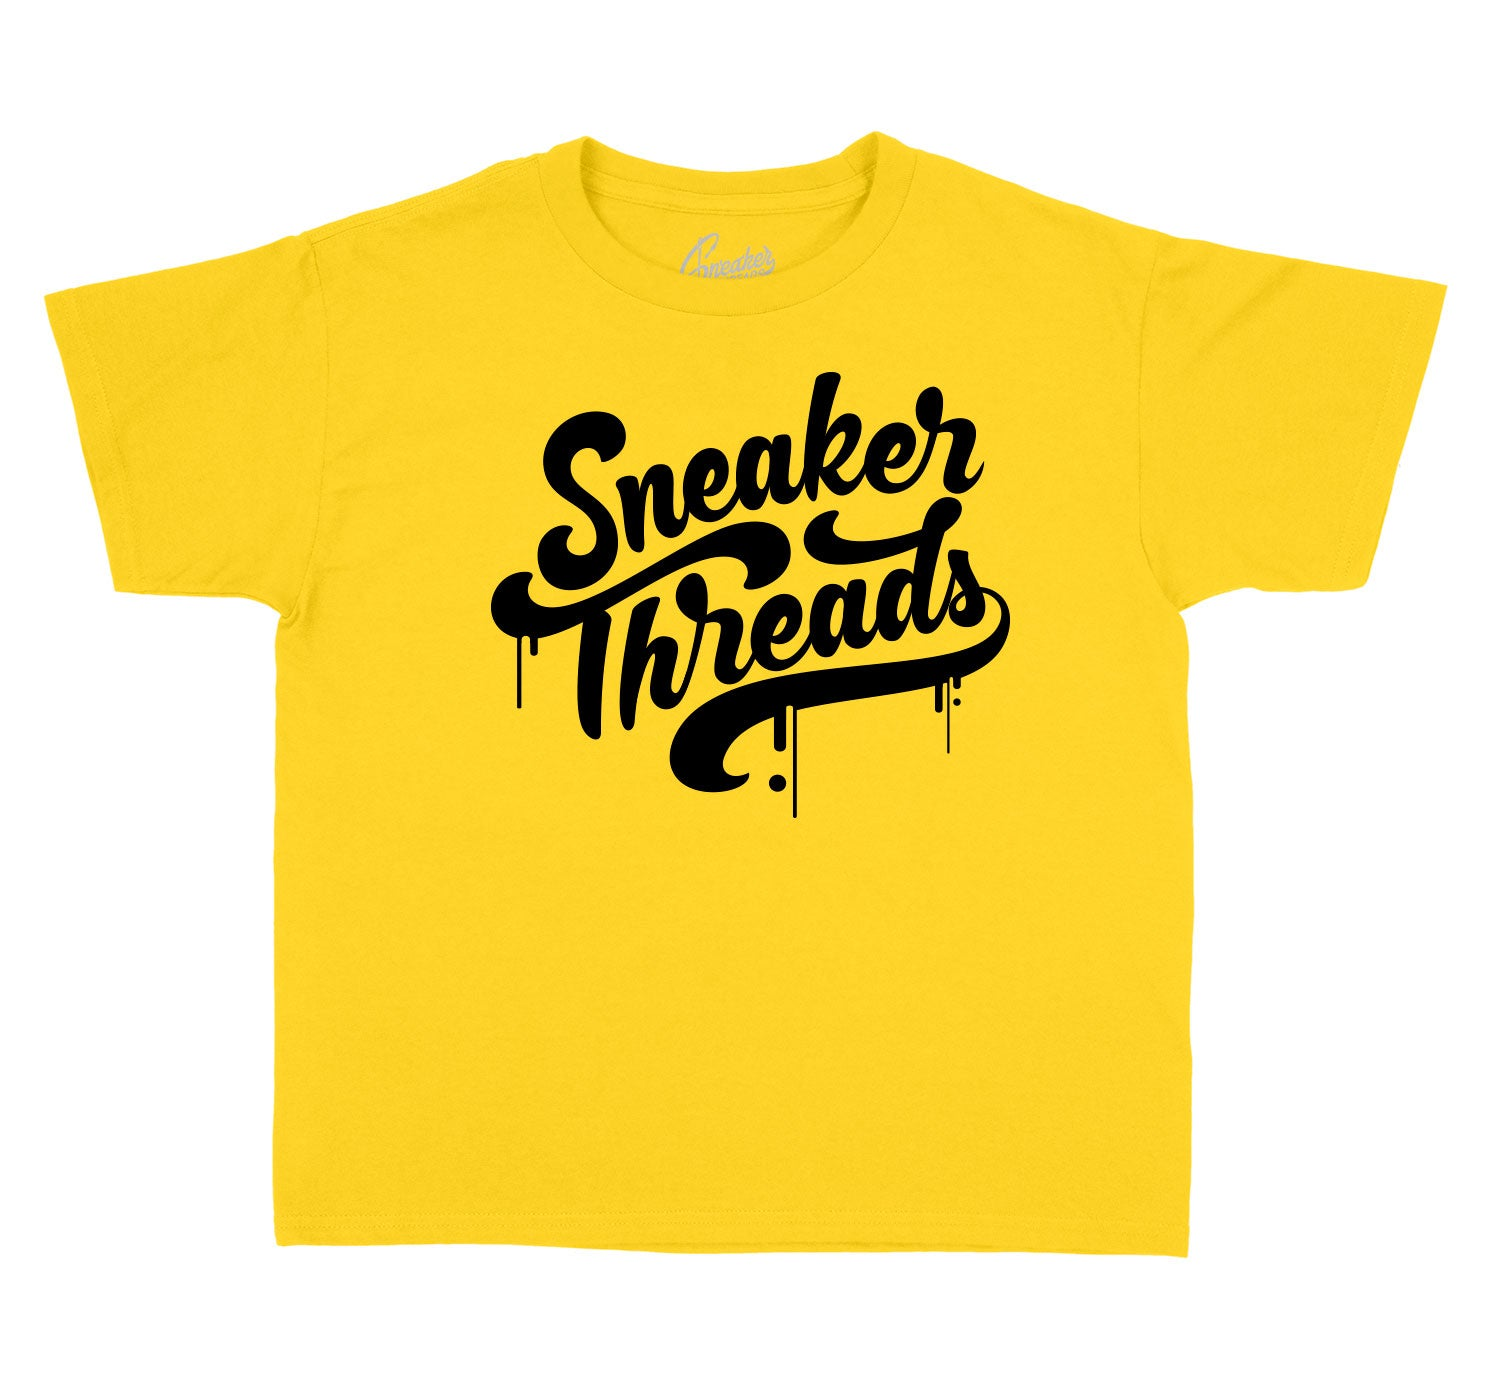 Jordan 12 University Gold sneakers have matching children tees